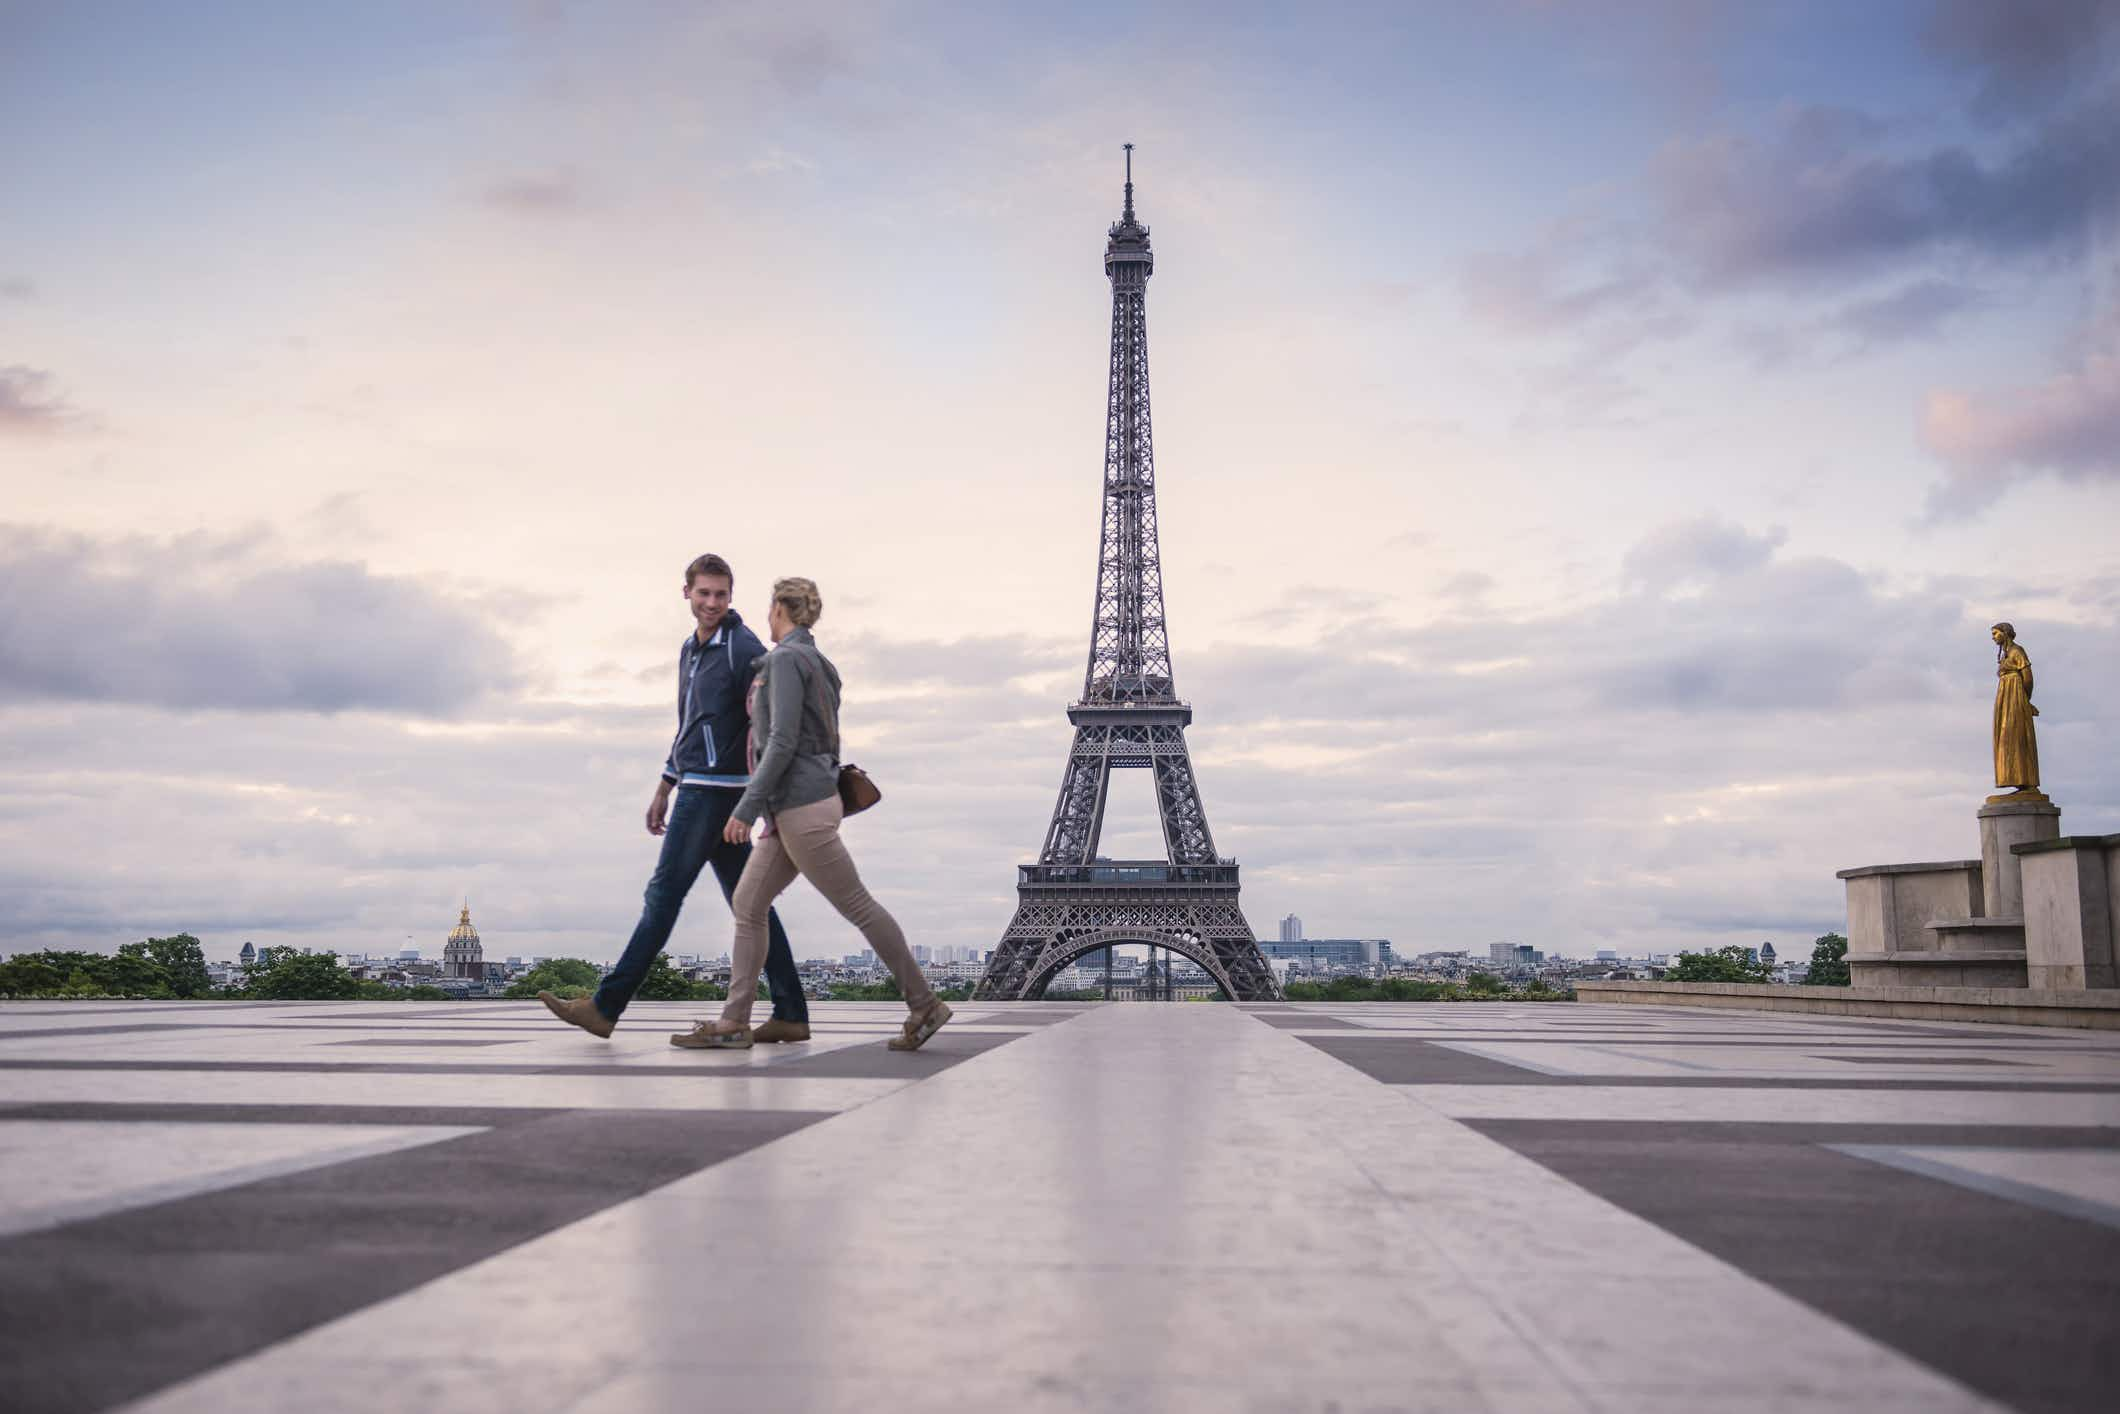 France has a new airline aimed at millennial travellers